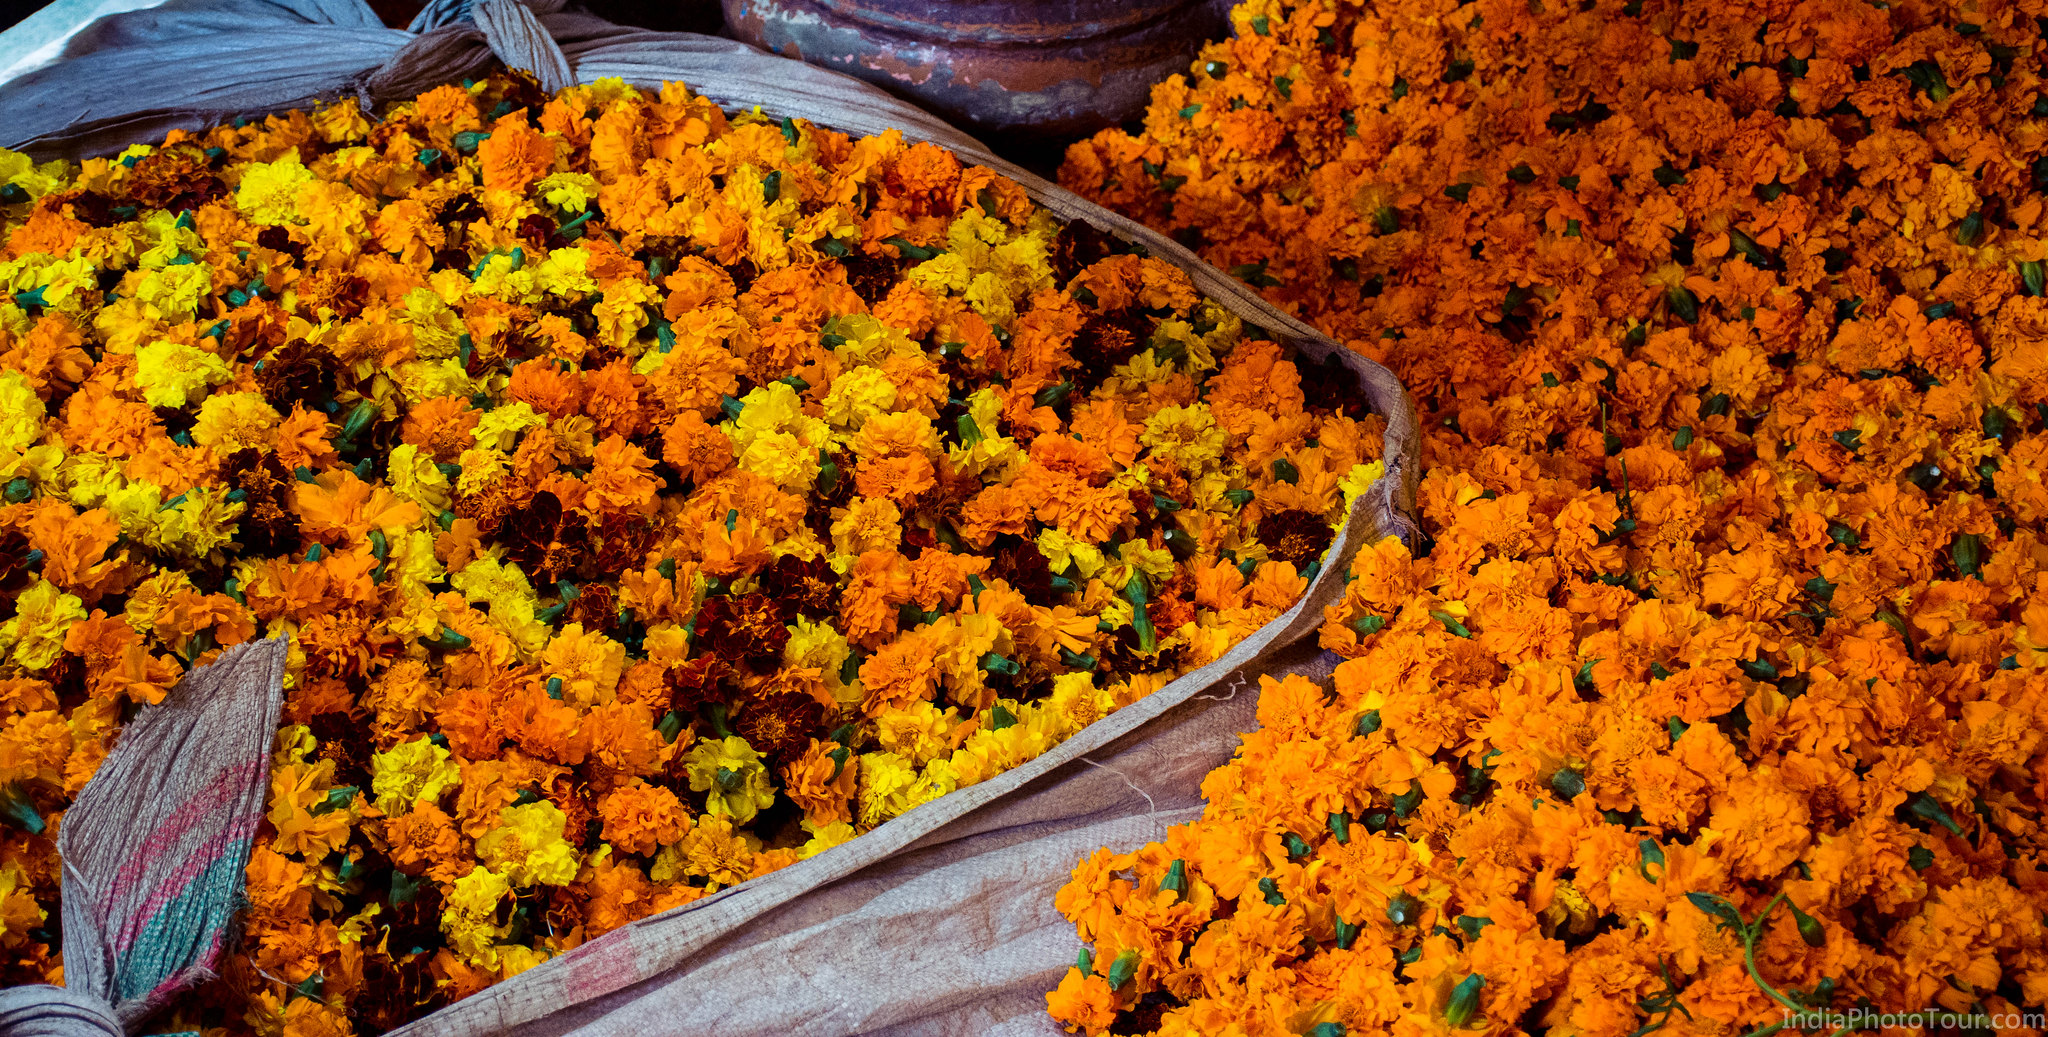 Marigold flowers in the flower market